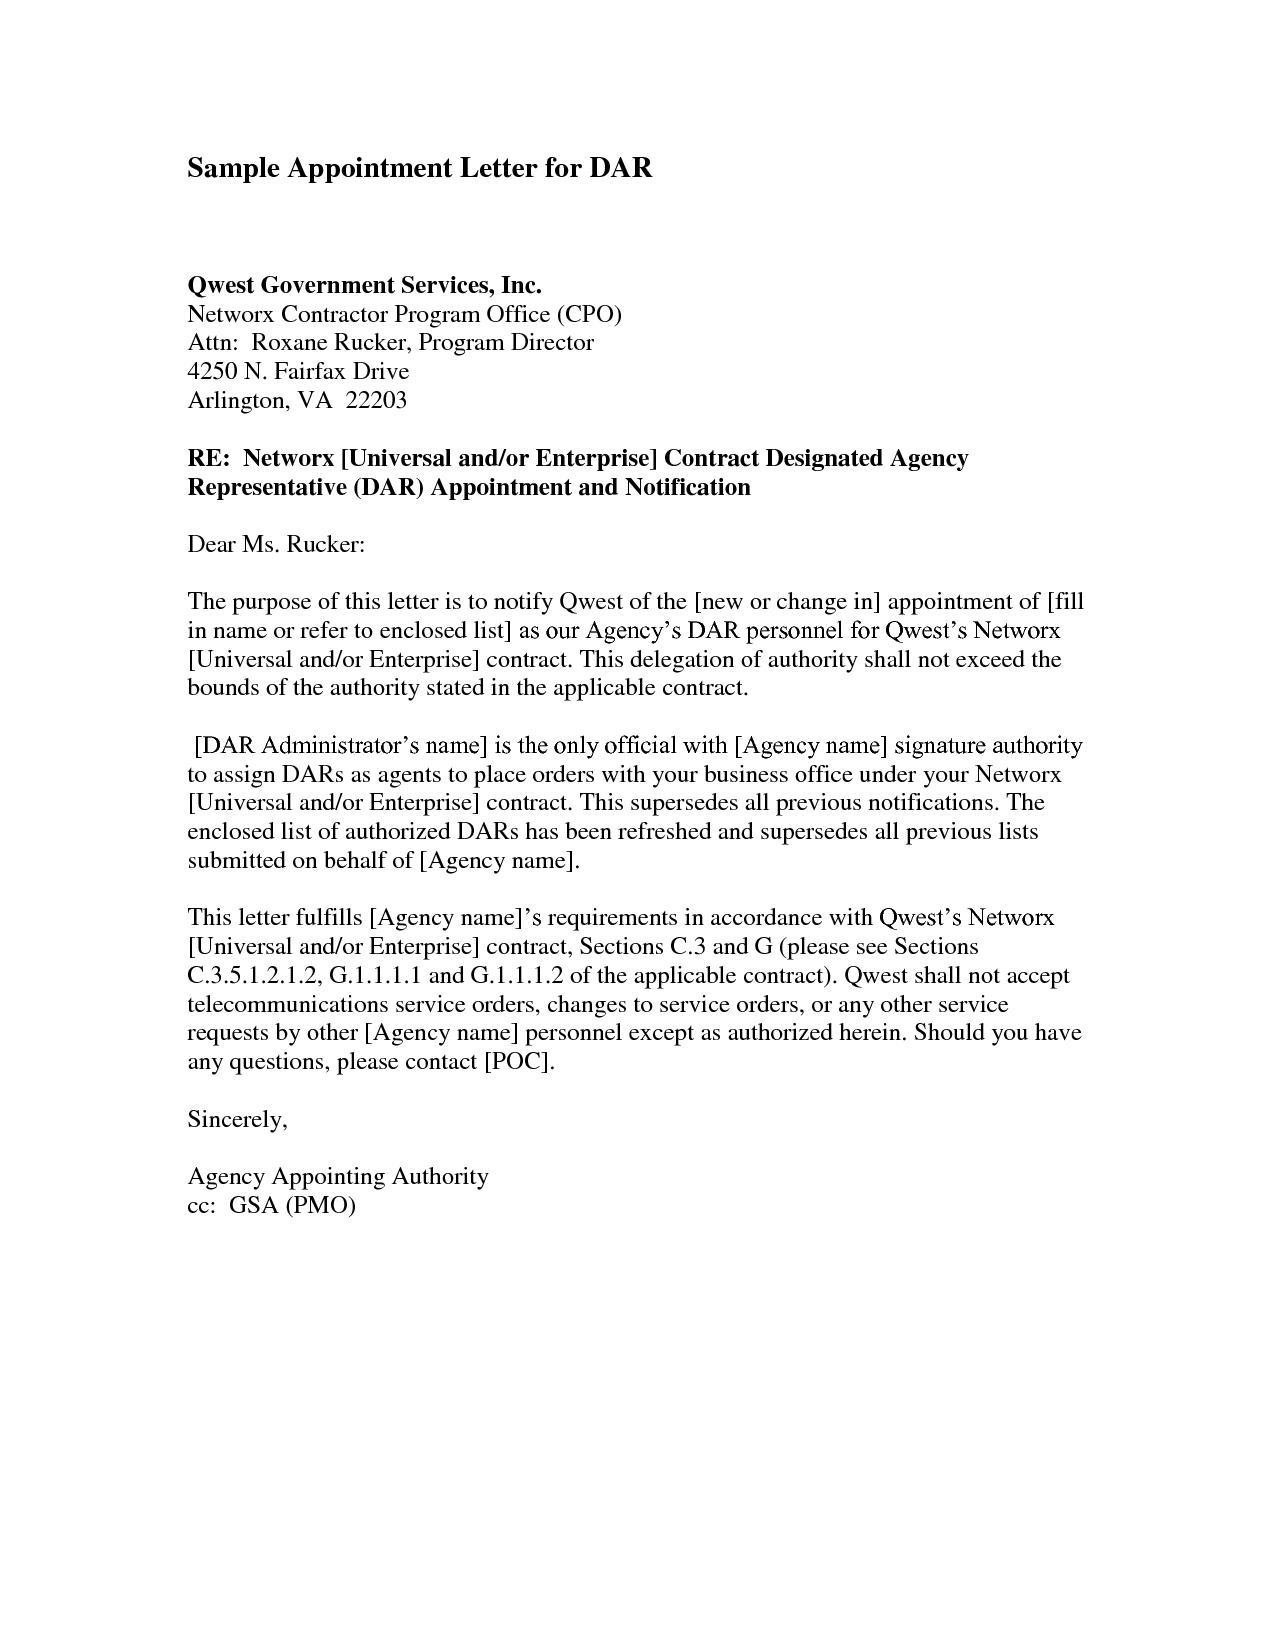 Independent Contractor Offer Letter Template - Trustee Appointment Letter Director Trustee is Appointed or